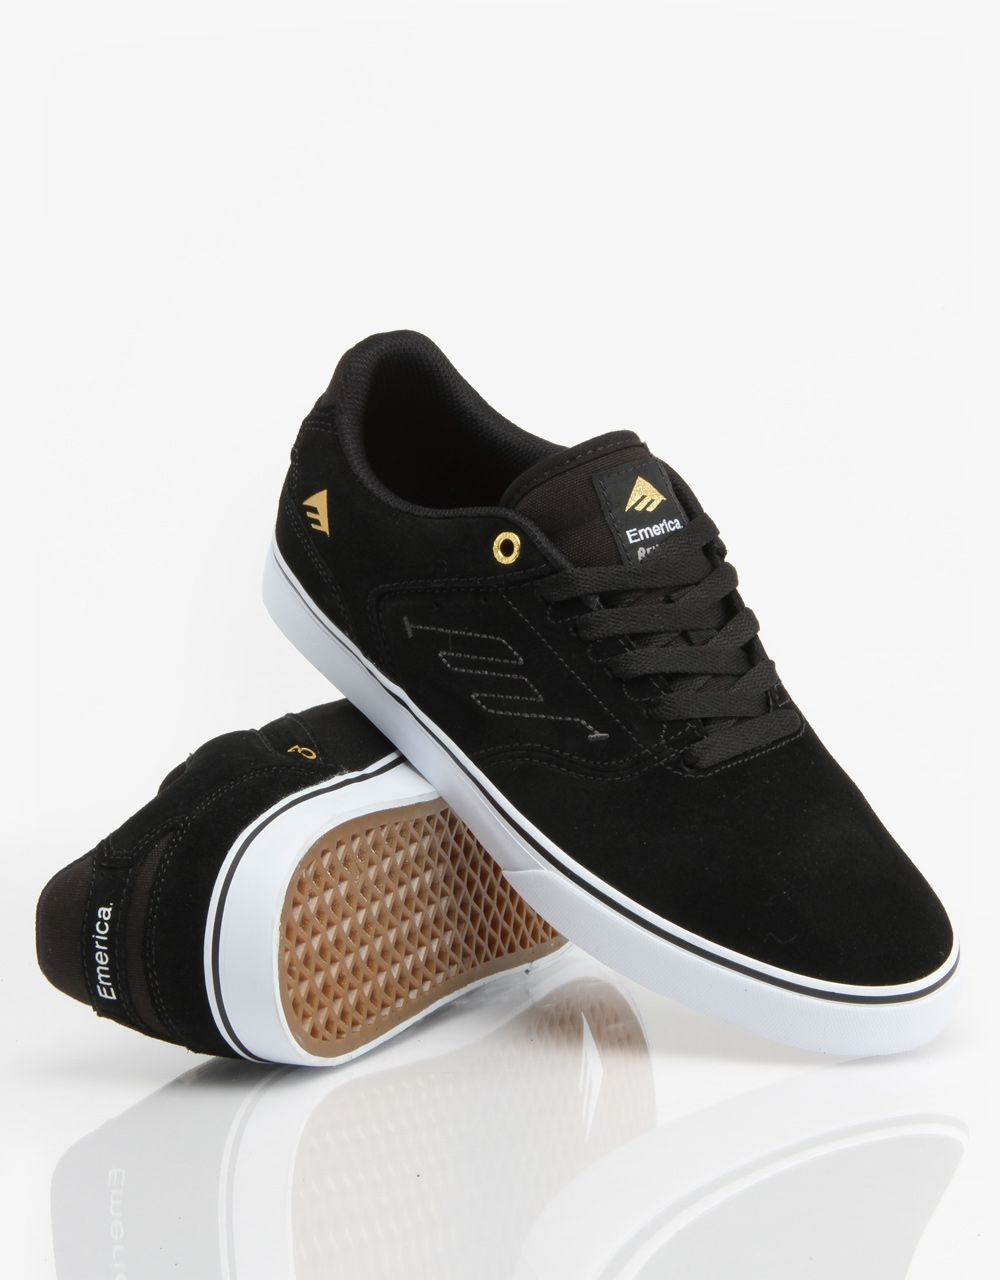 Emerica The Reynolds Low Vulc Skate Shoes - Black White - RouteOne.co.uk dfe96857a2b